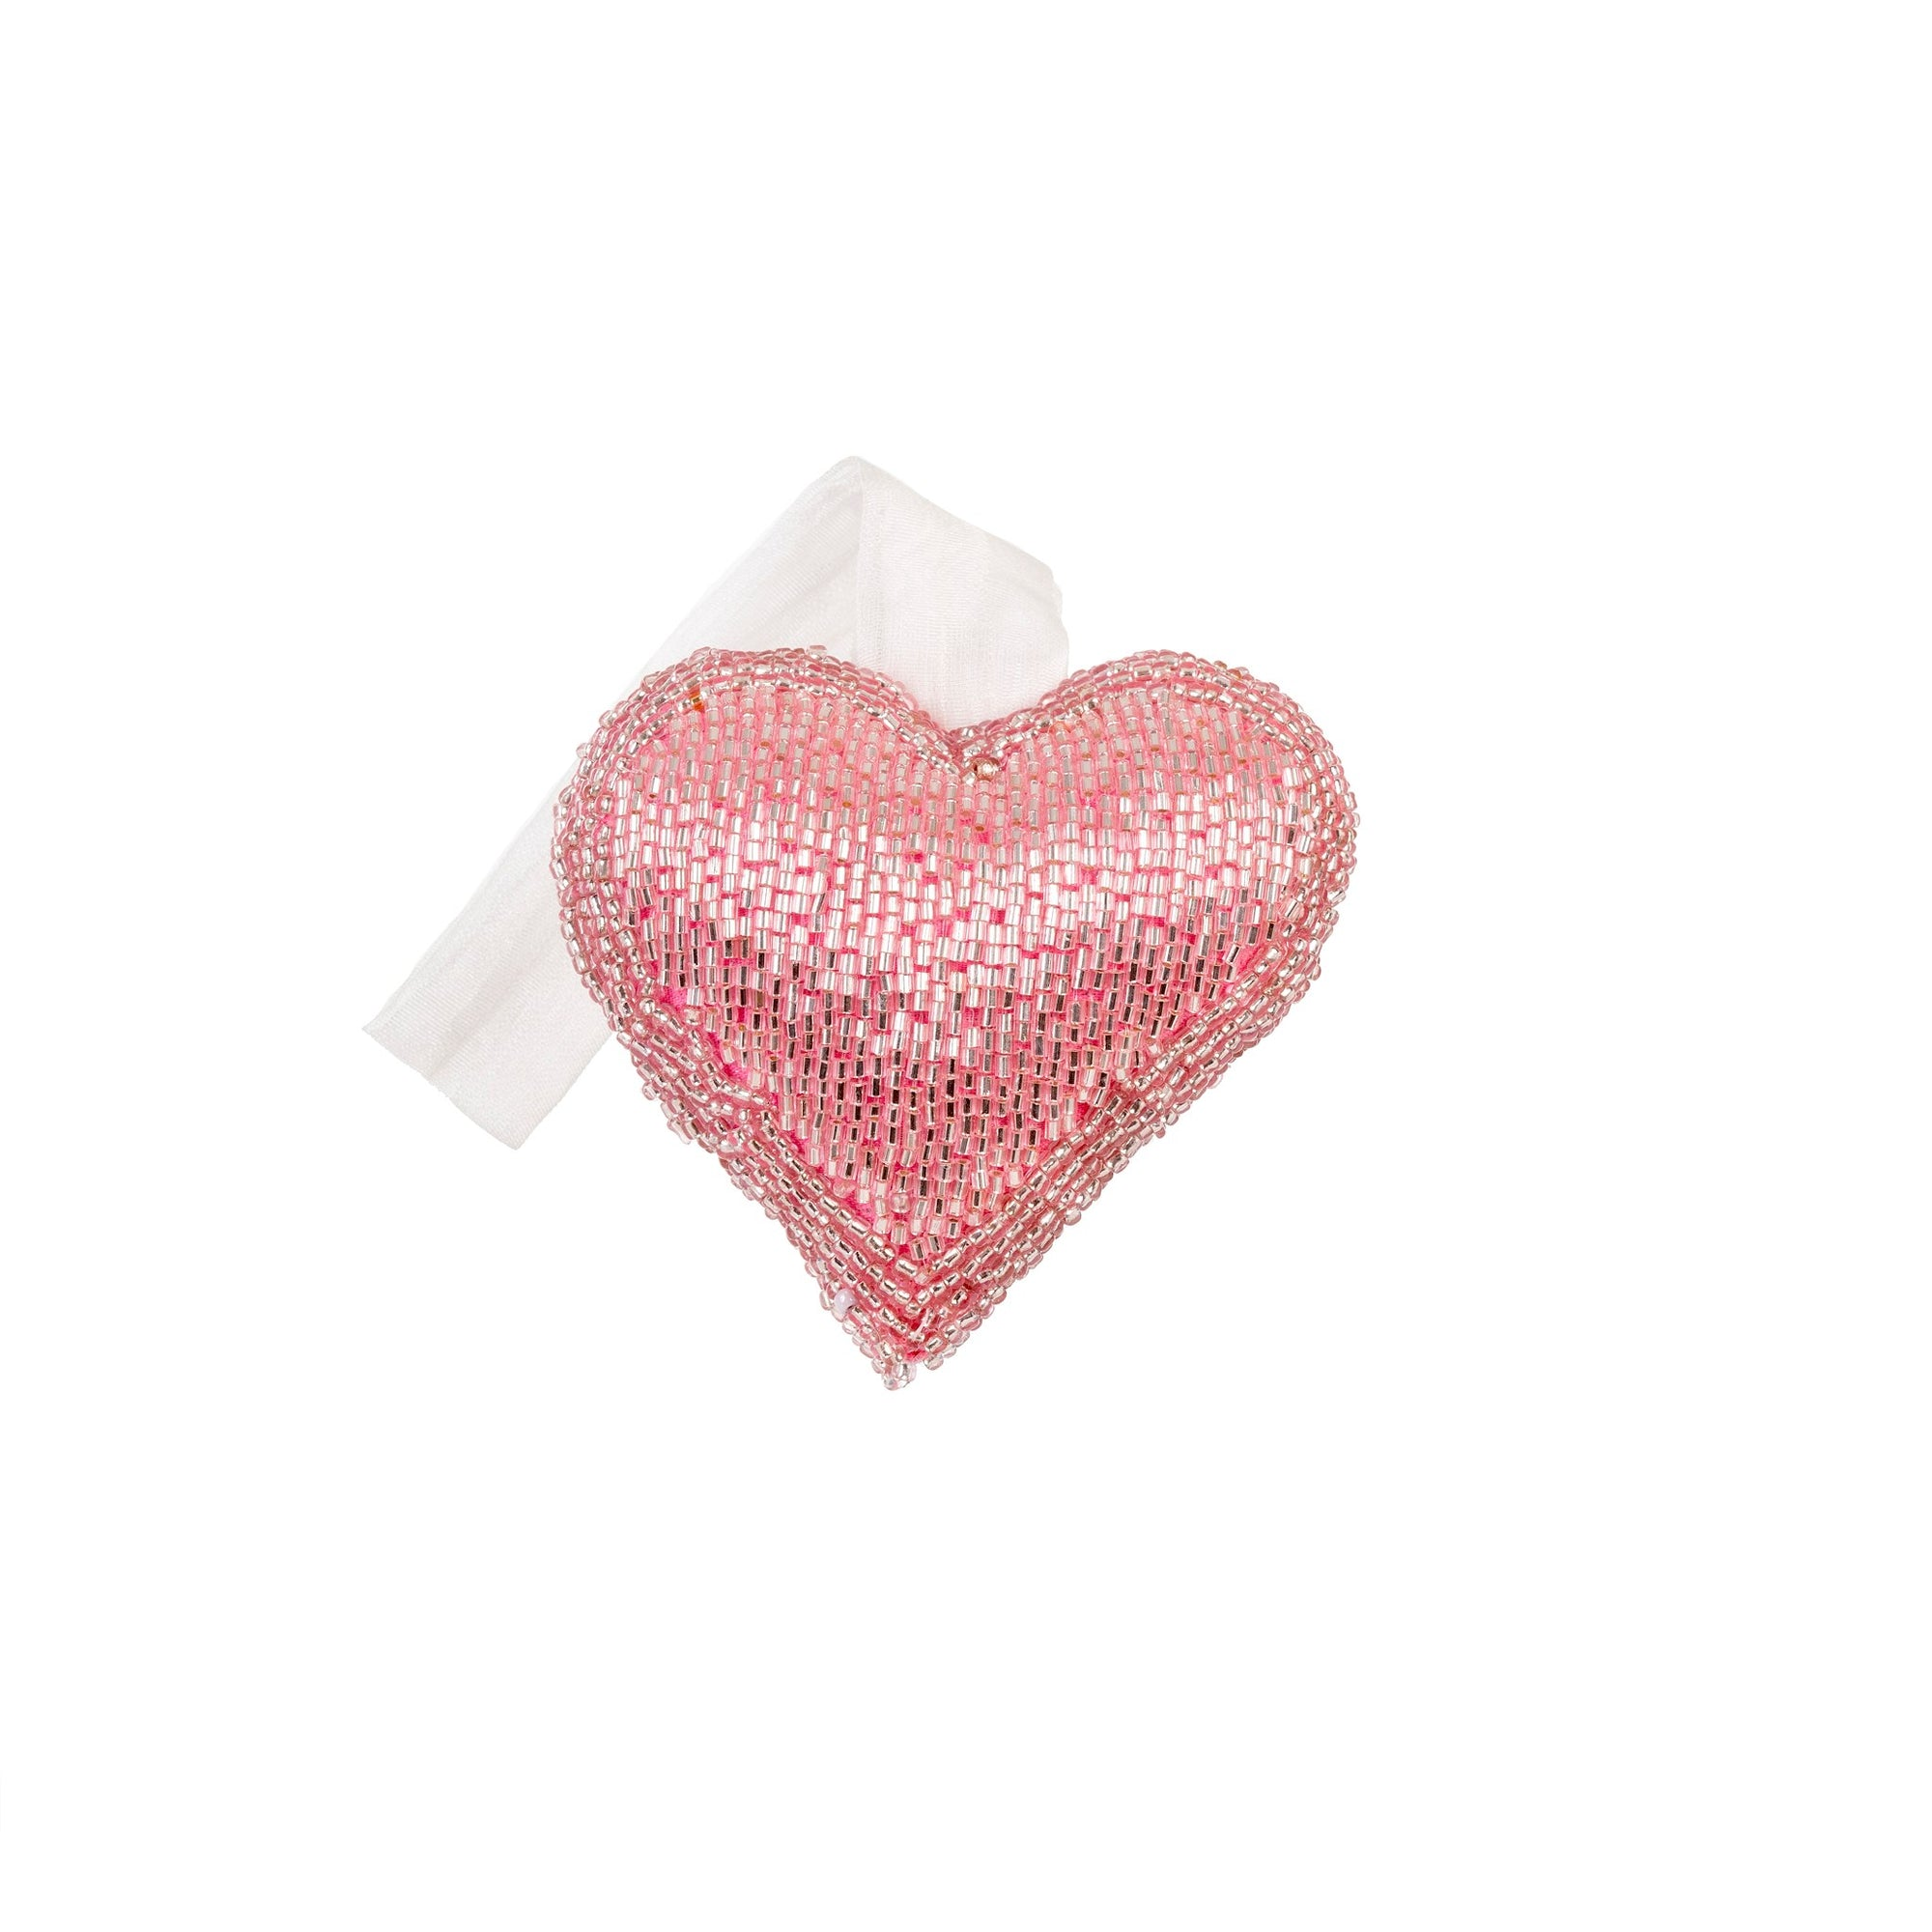 Pink Beaded Heart Ornament - Small